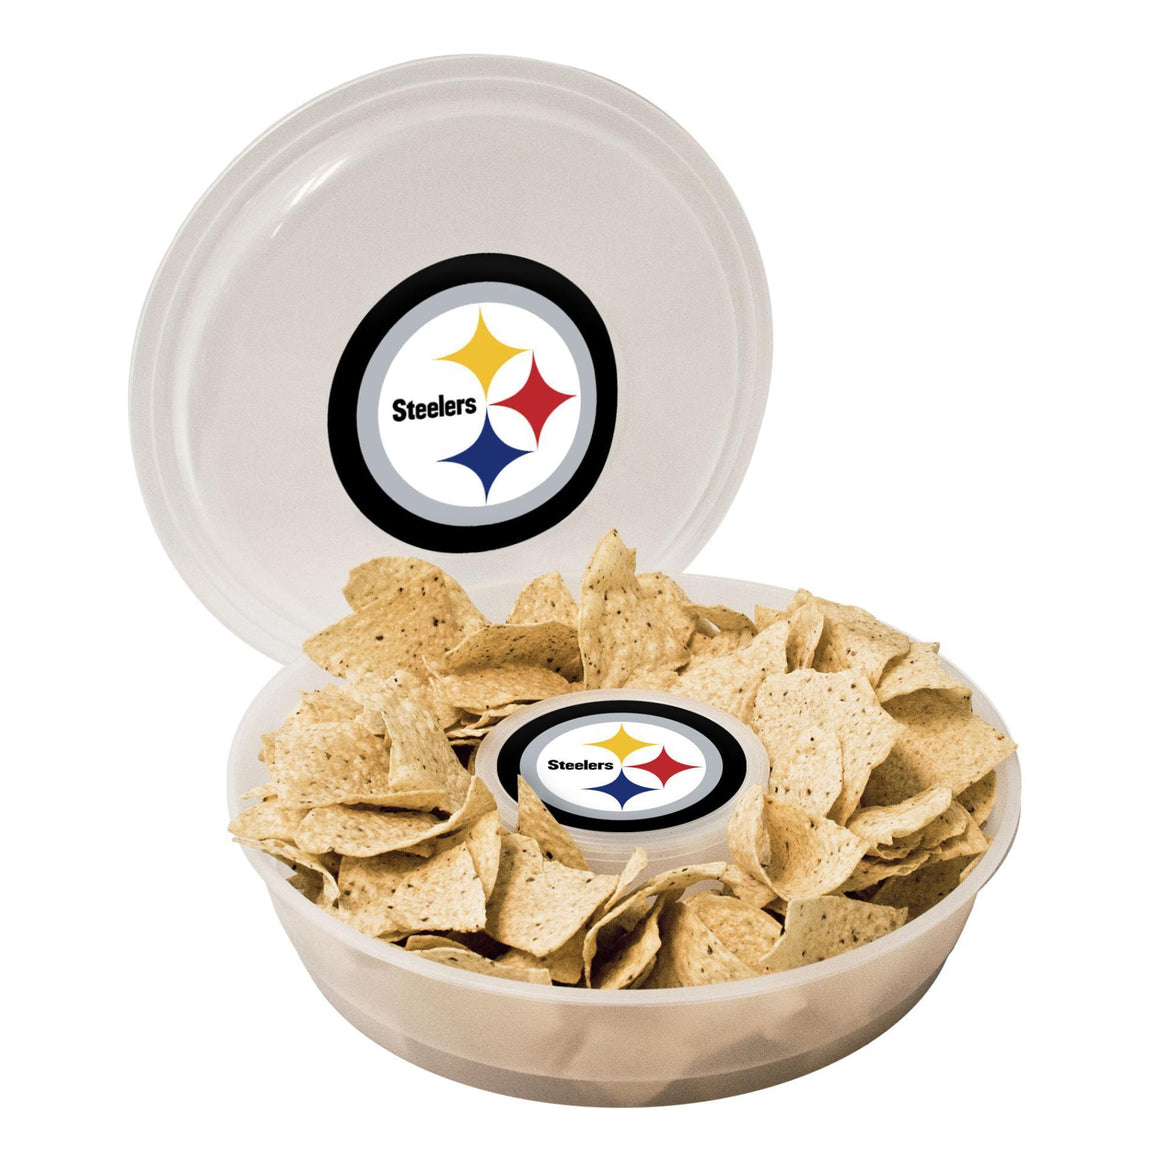 BOTANERO CHIP & DIP STEELERS 244878